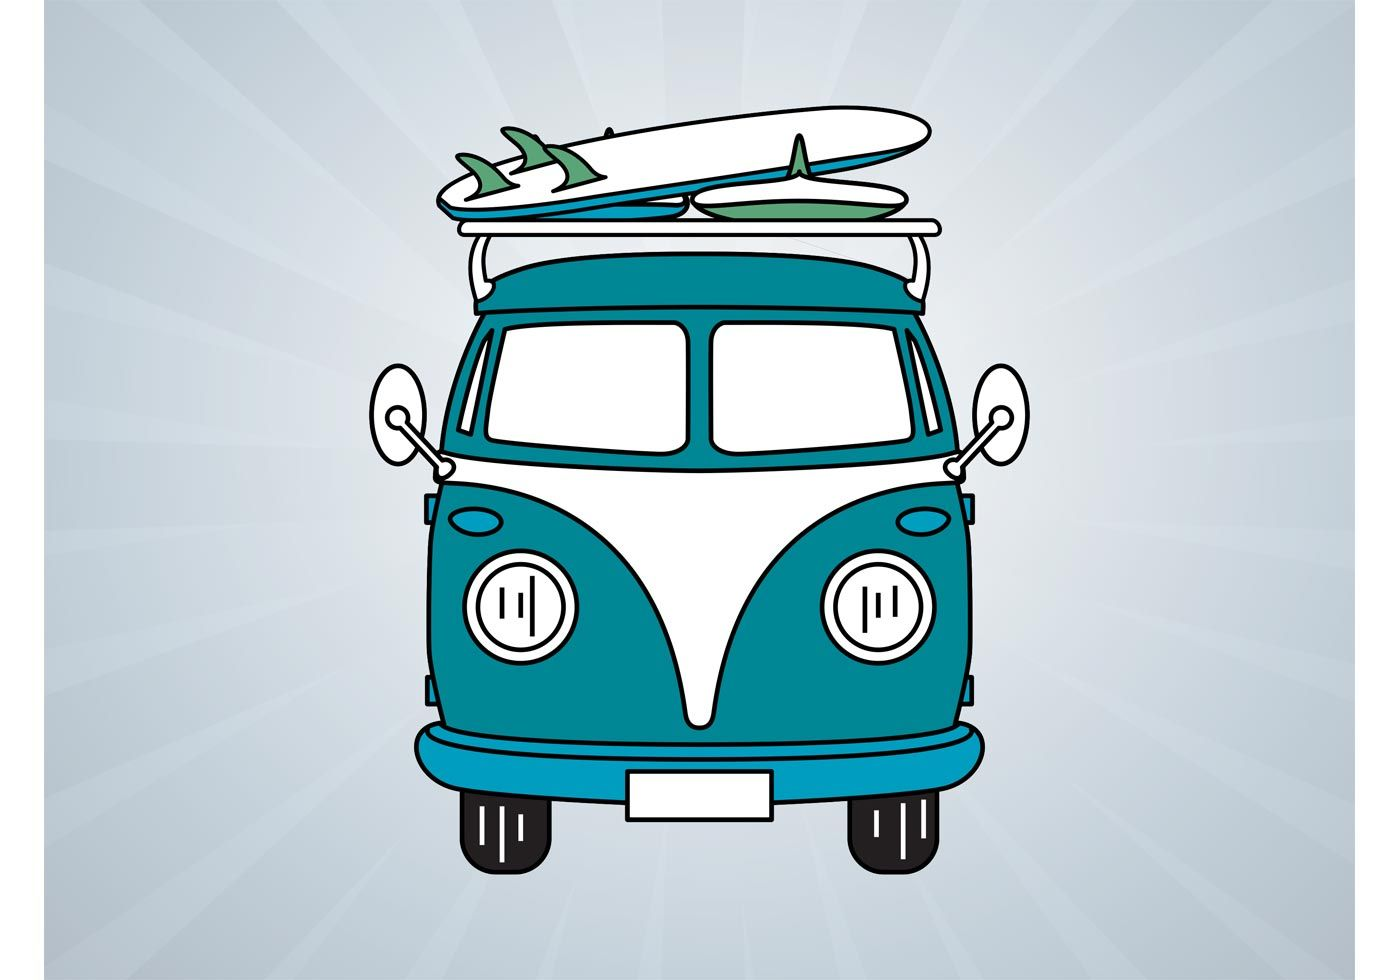 vw bus  vector art   downloads branding pinterest voiture combi  dessin